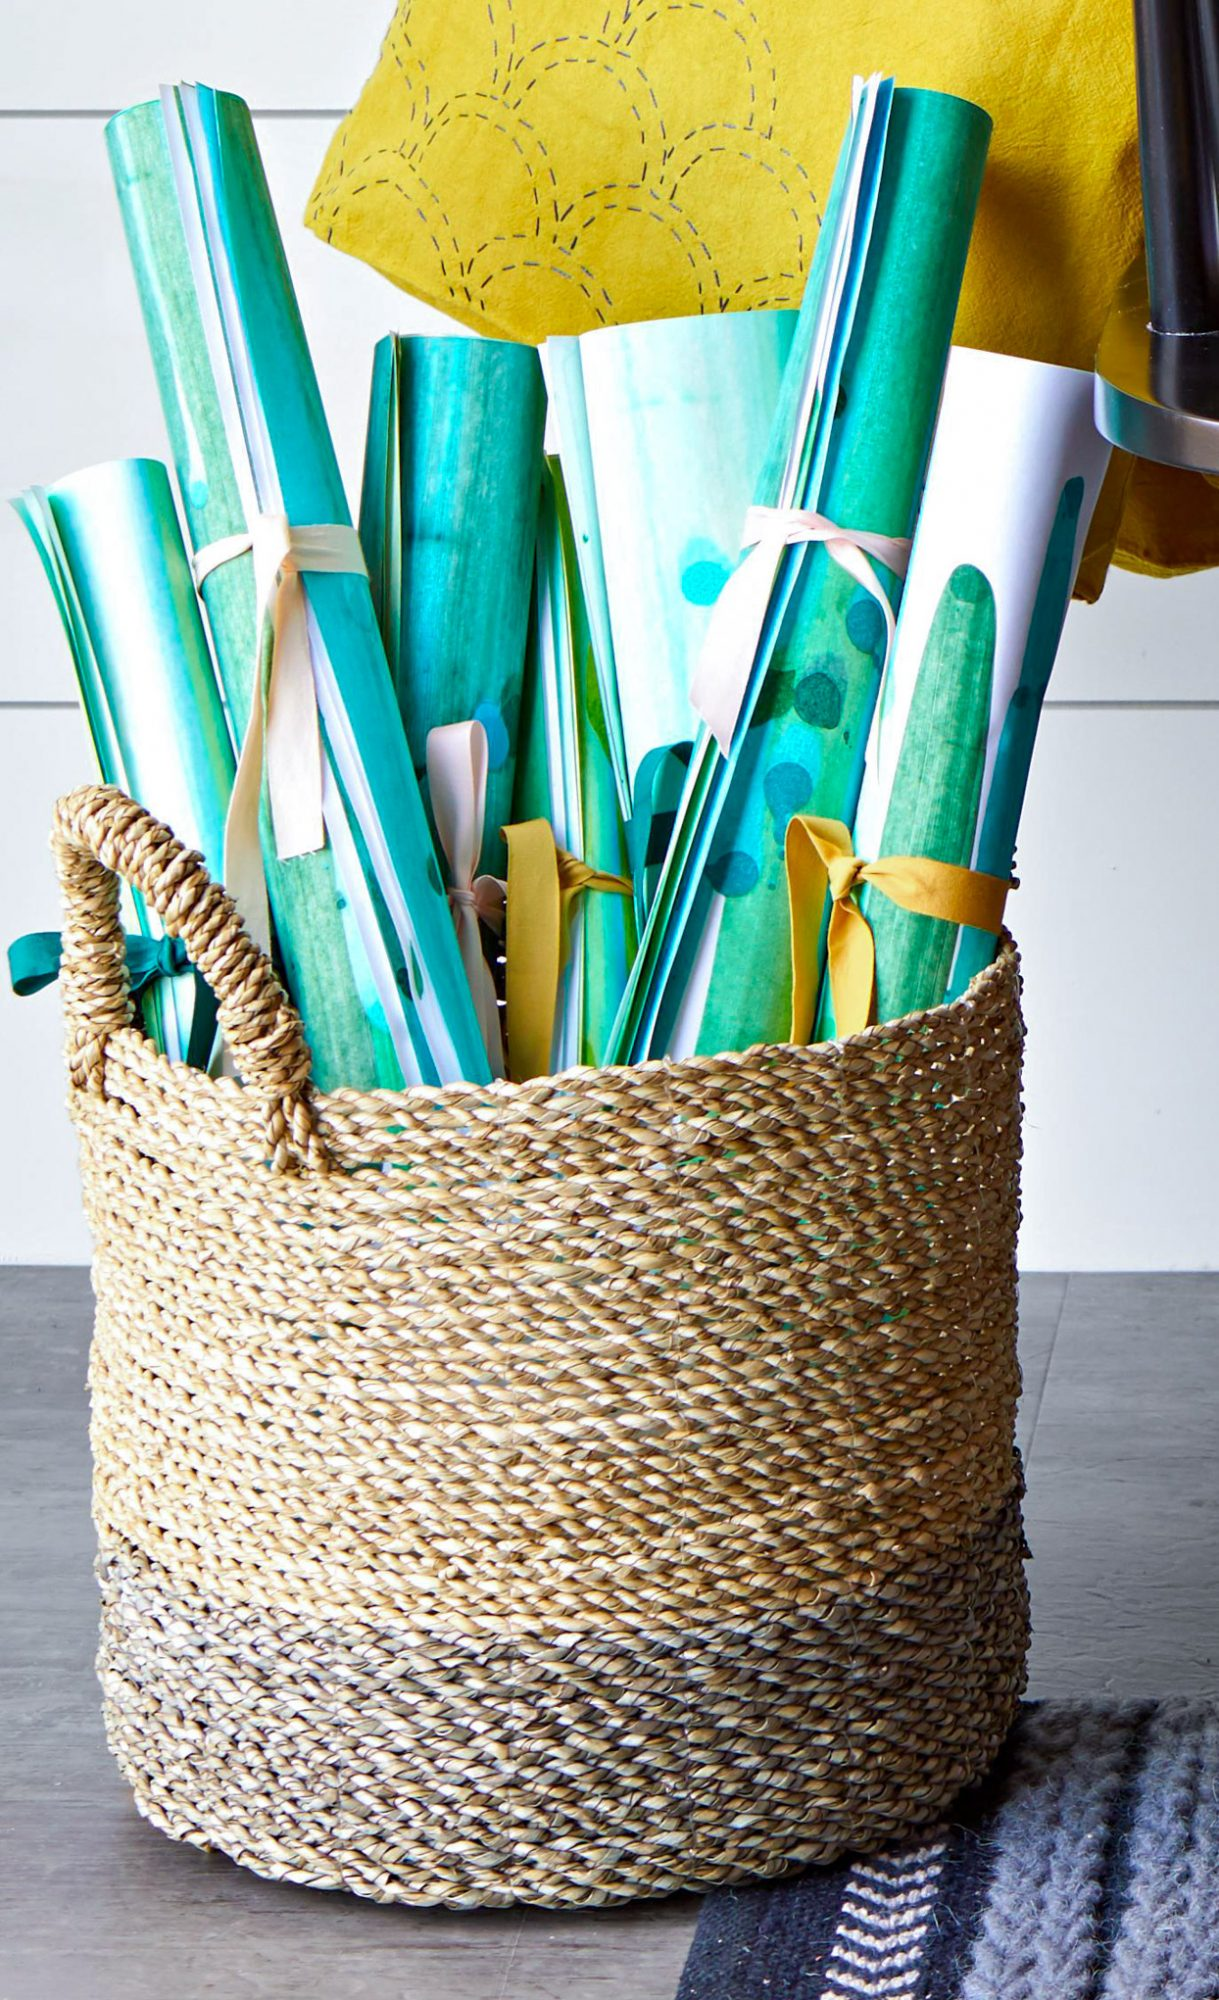 Blue and green wrapping paper in a basket